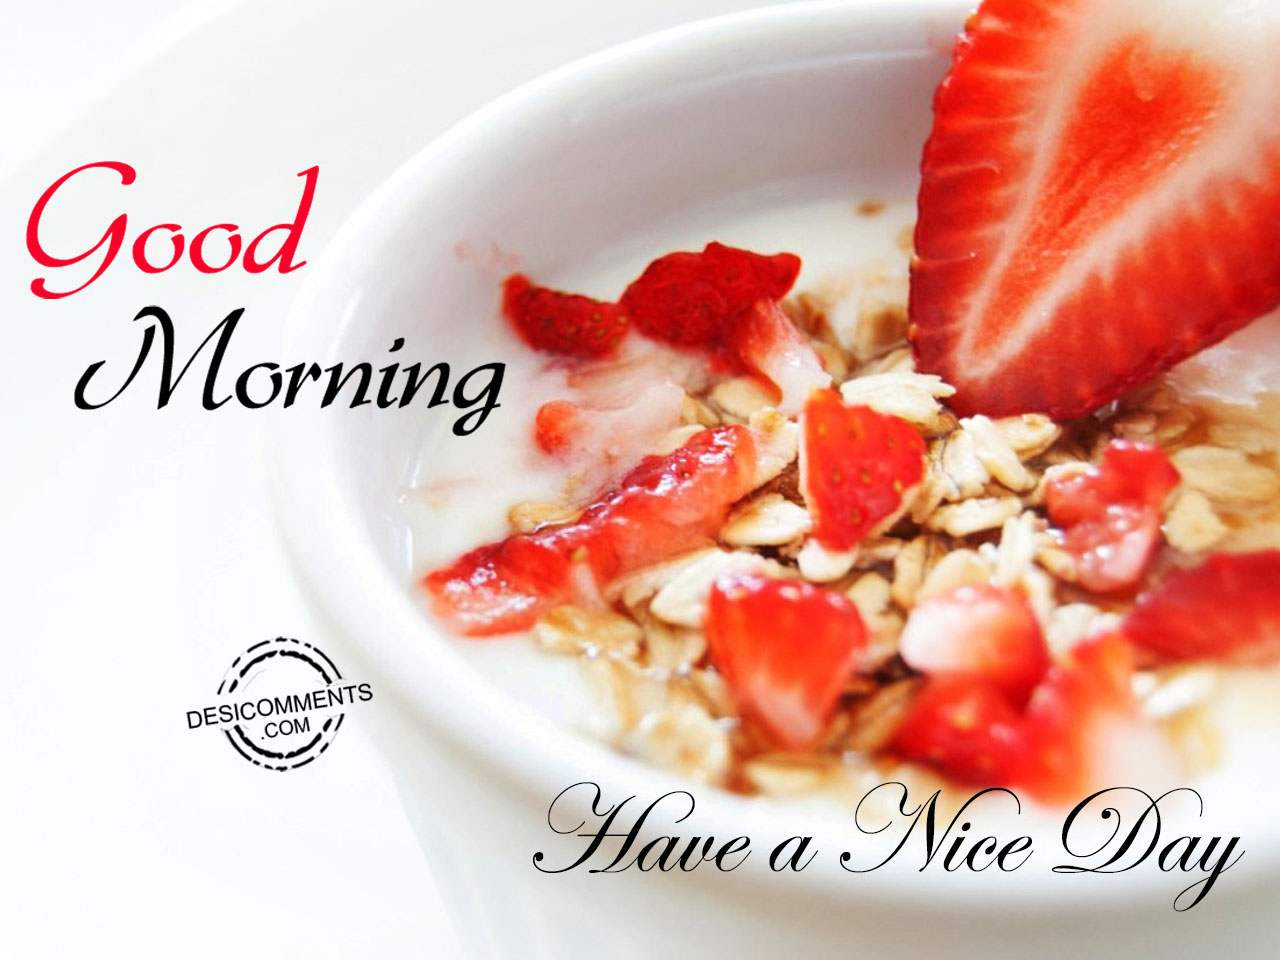 Good morning pictures images graphics page 9 for Good comments on pic